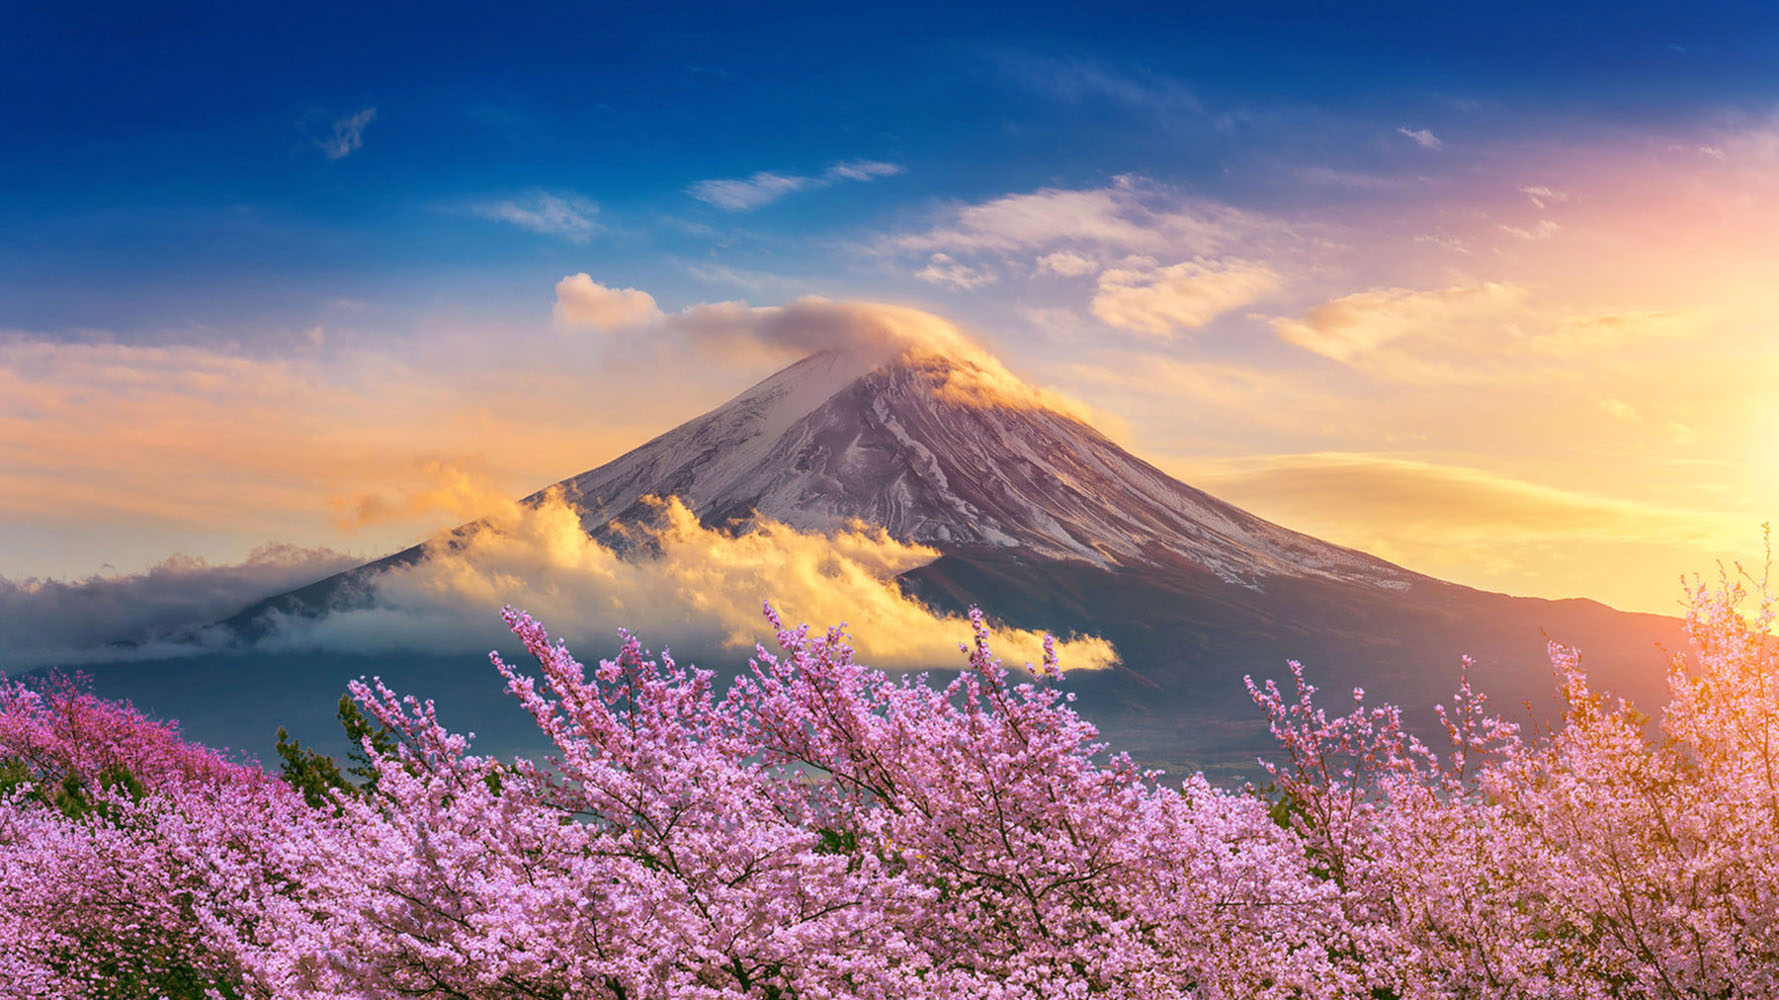 Fuji mountain and cherry blossoms in spring, Japan